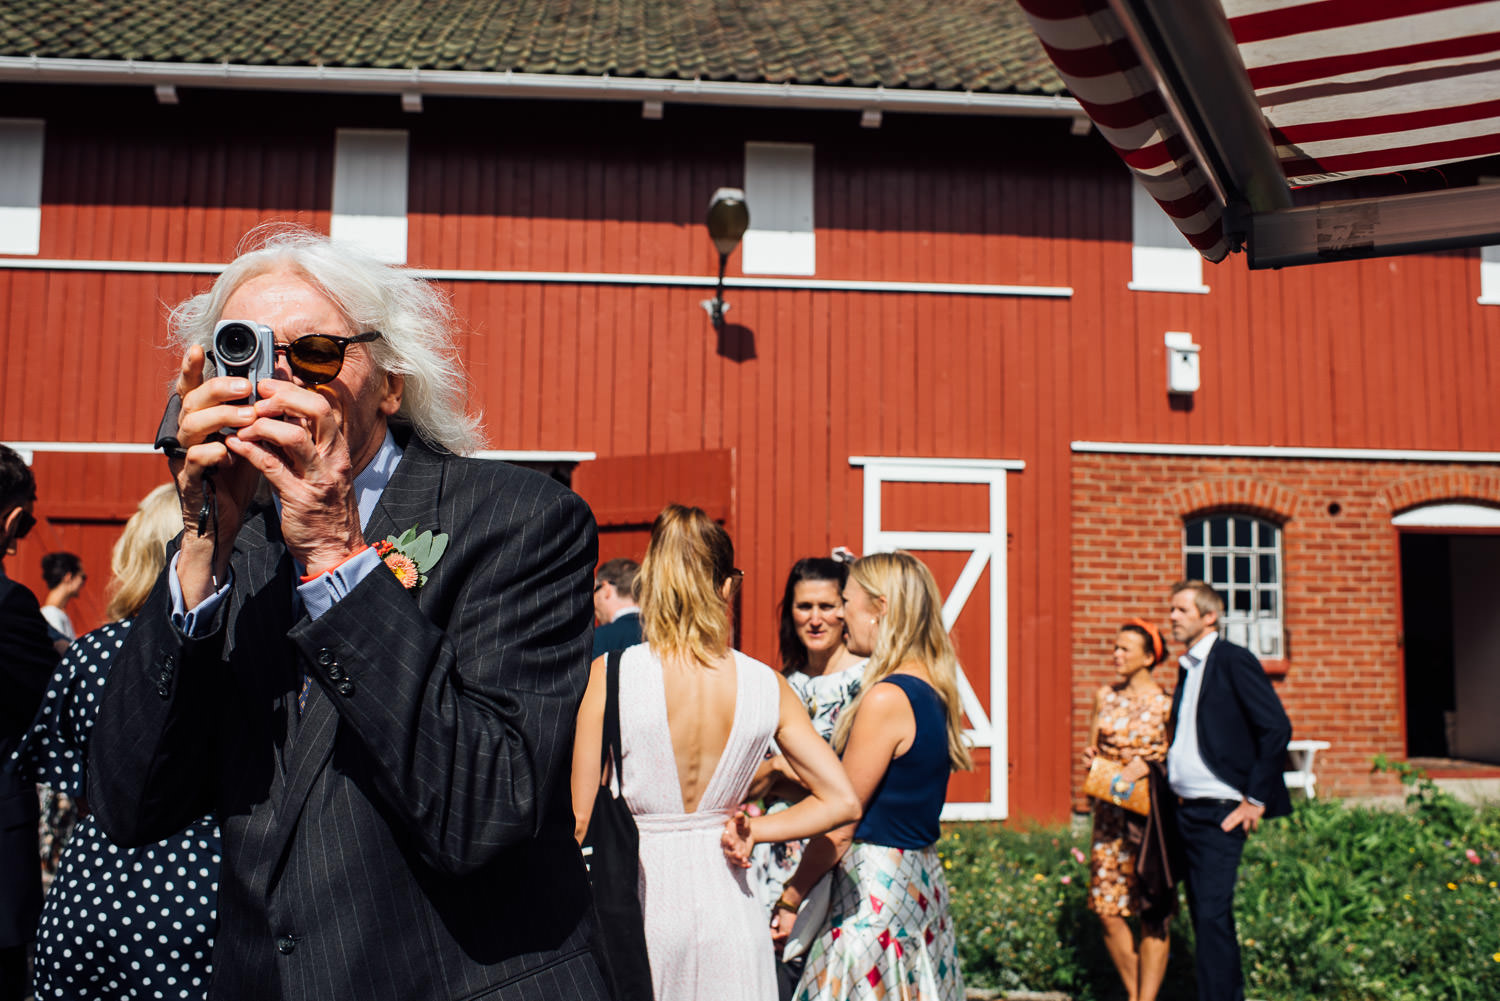 Bohemian wedding in Norwegian Barn Wedding by norway destination wedding photographer the shannons photography